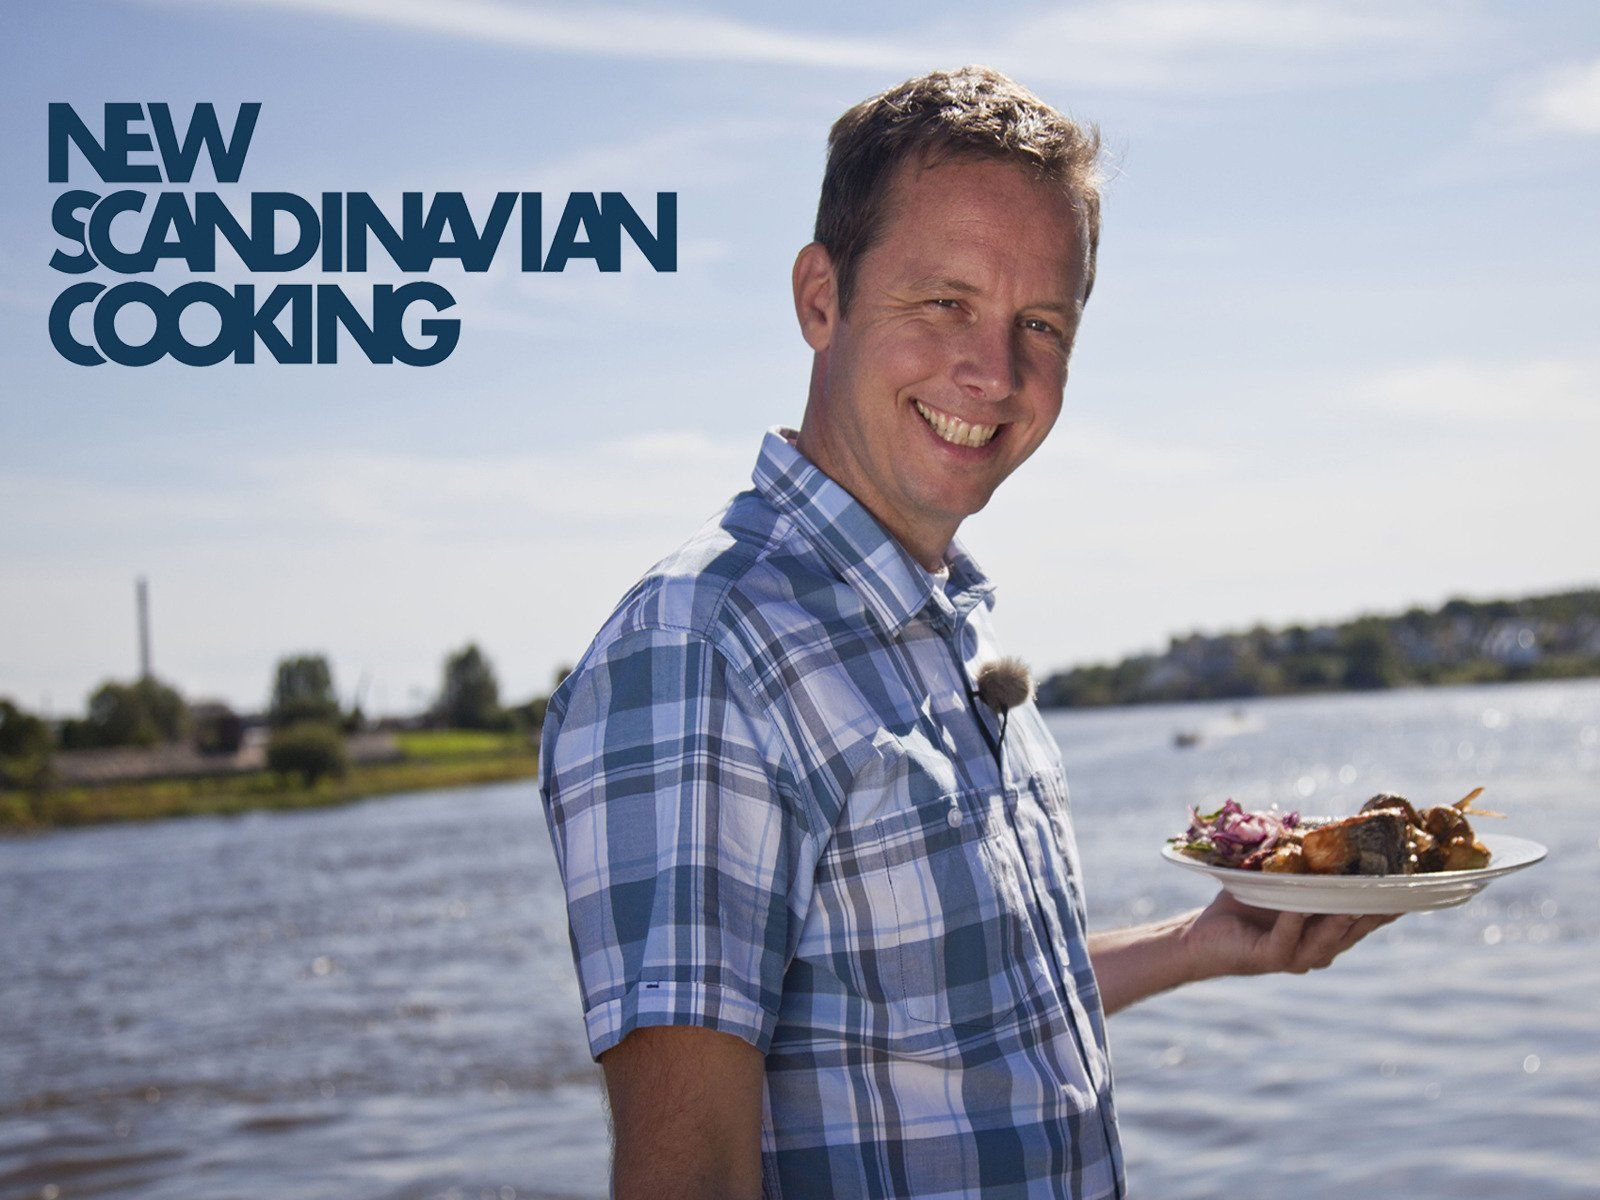 New Scandinavian Cooking - Season 3